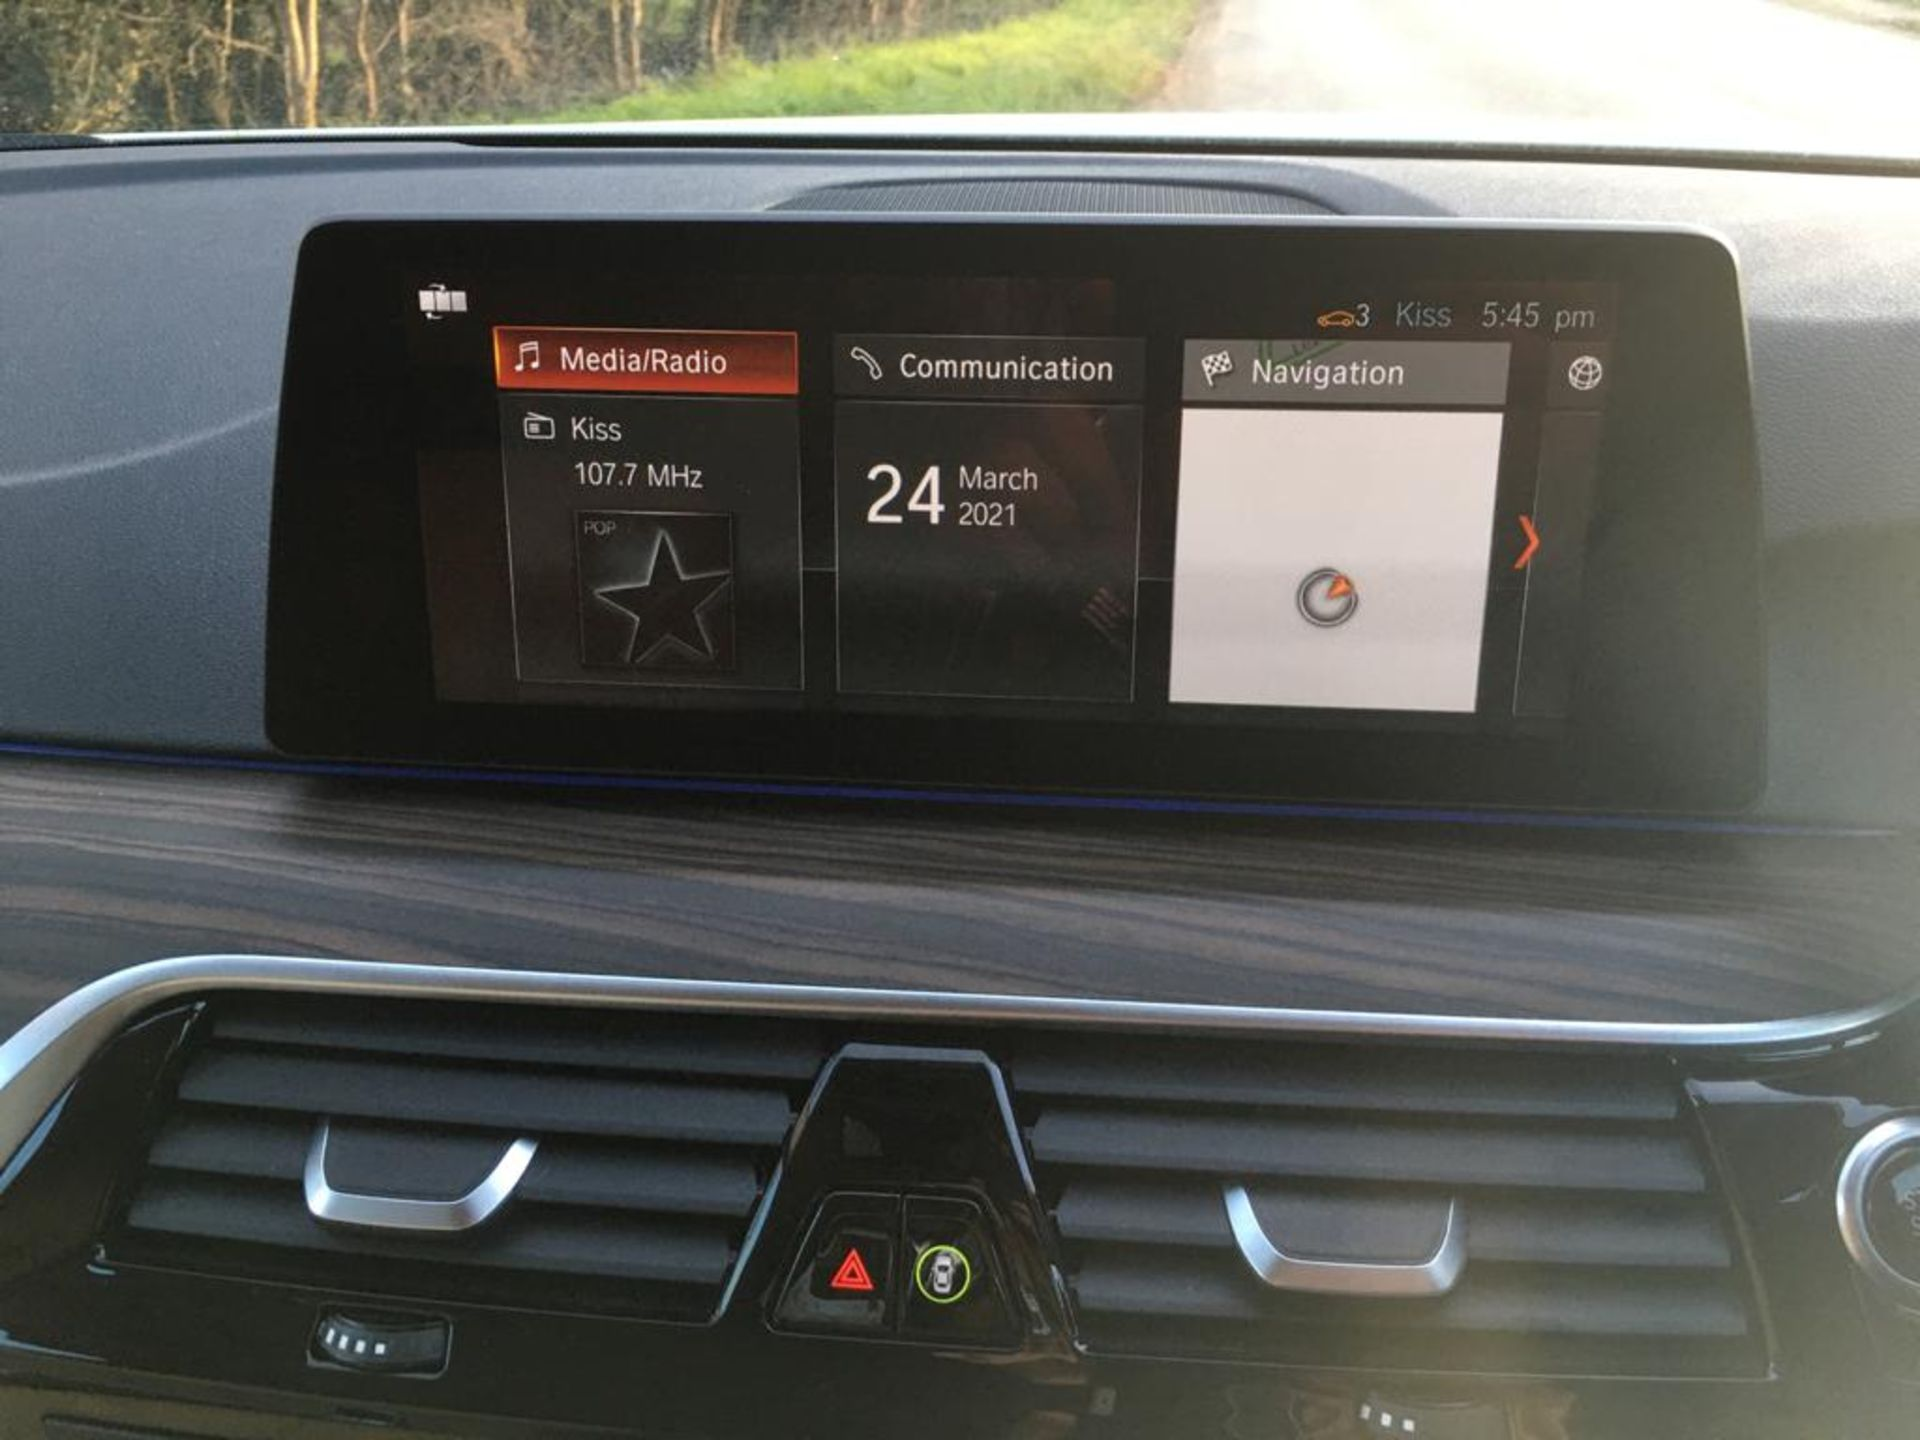 2018 BMW 530E 2.0 SE HYBIRD SALOON AUTOMATIC - Image 21 of 34